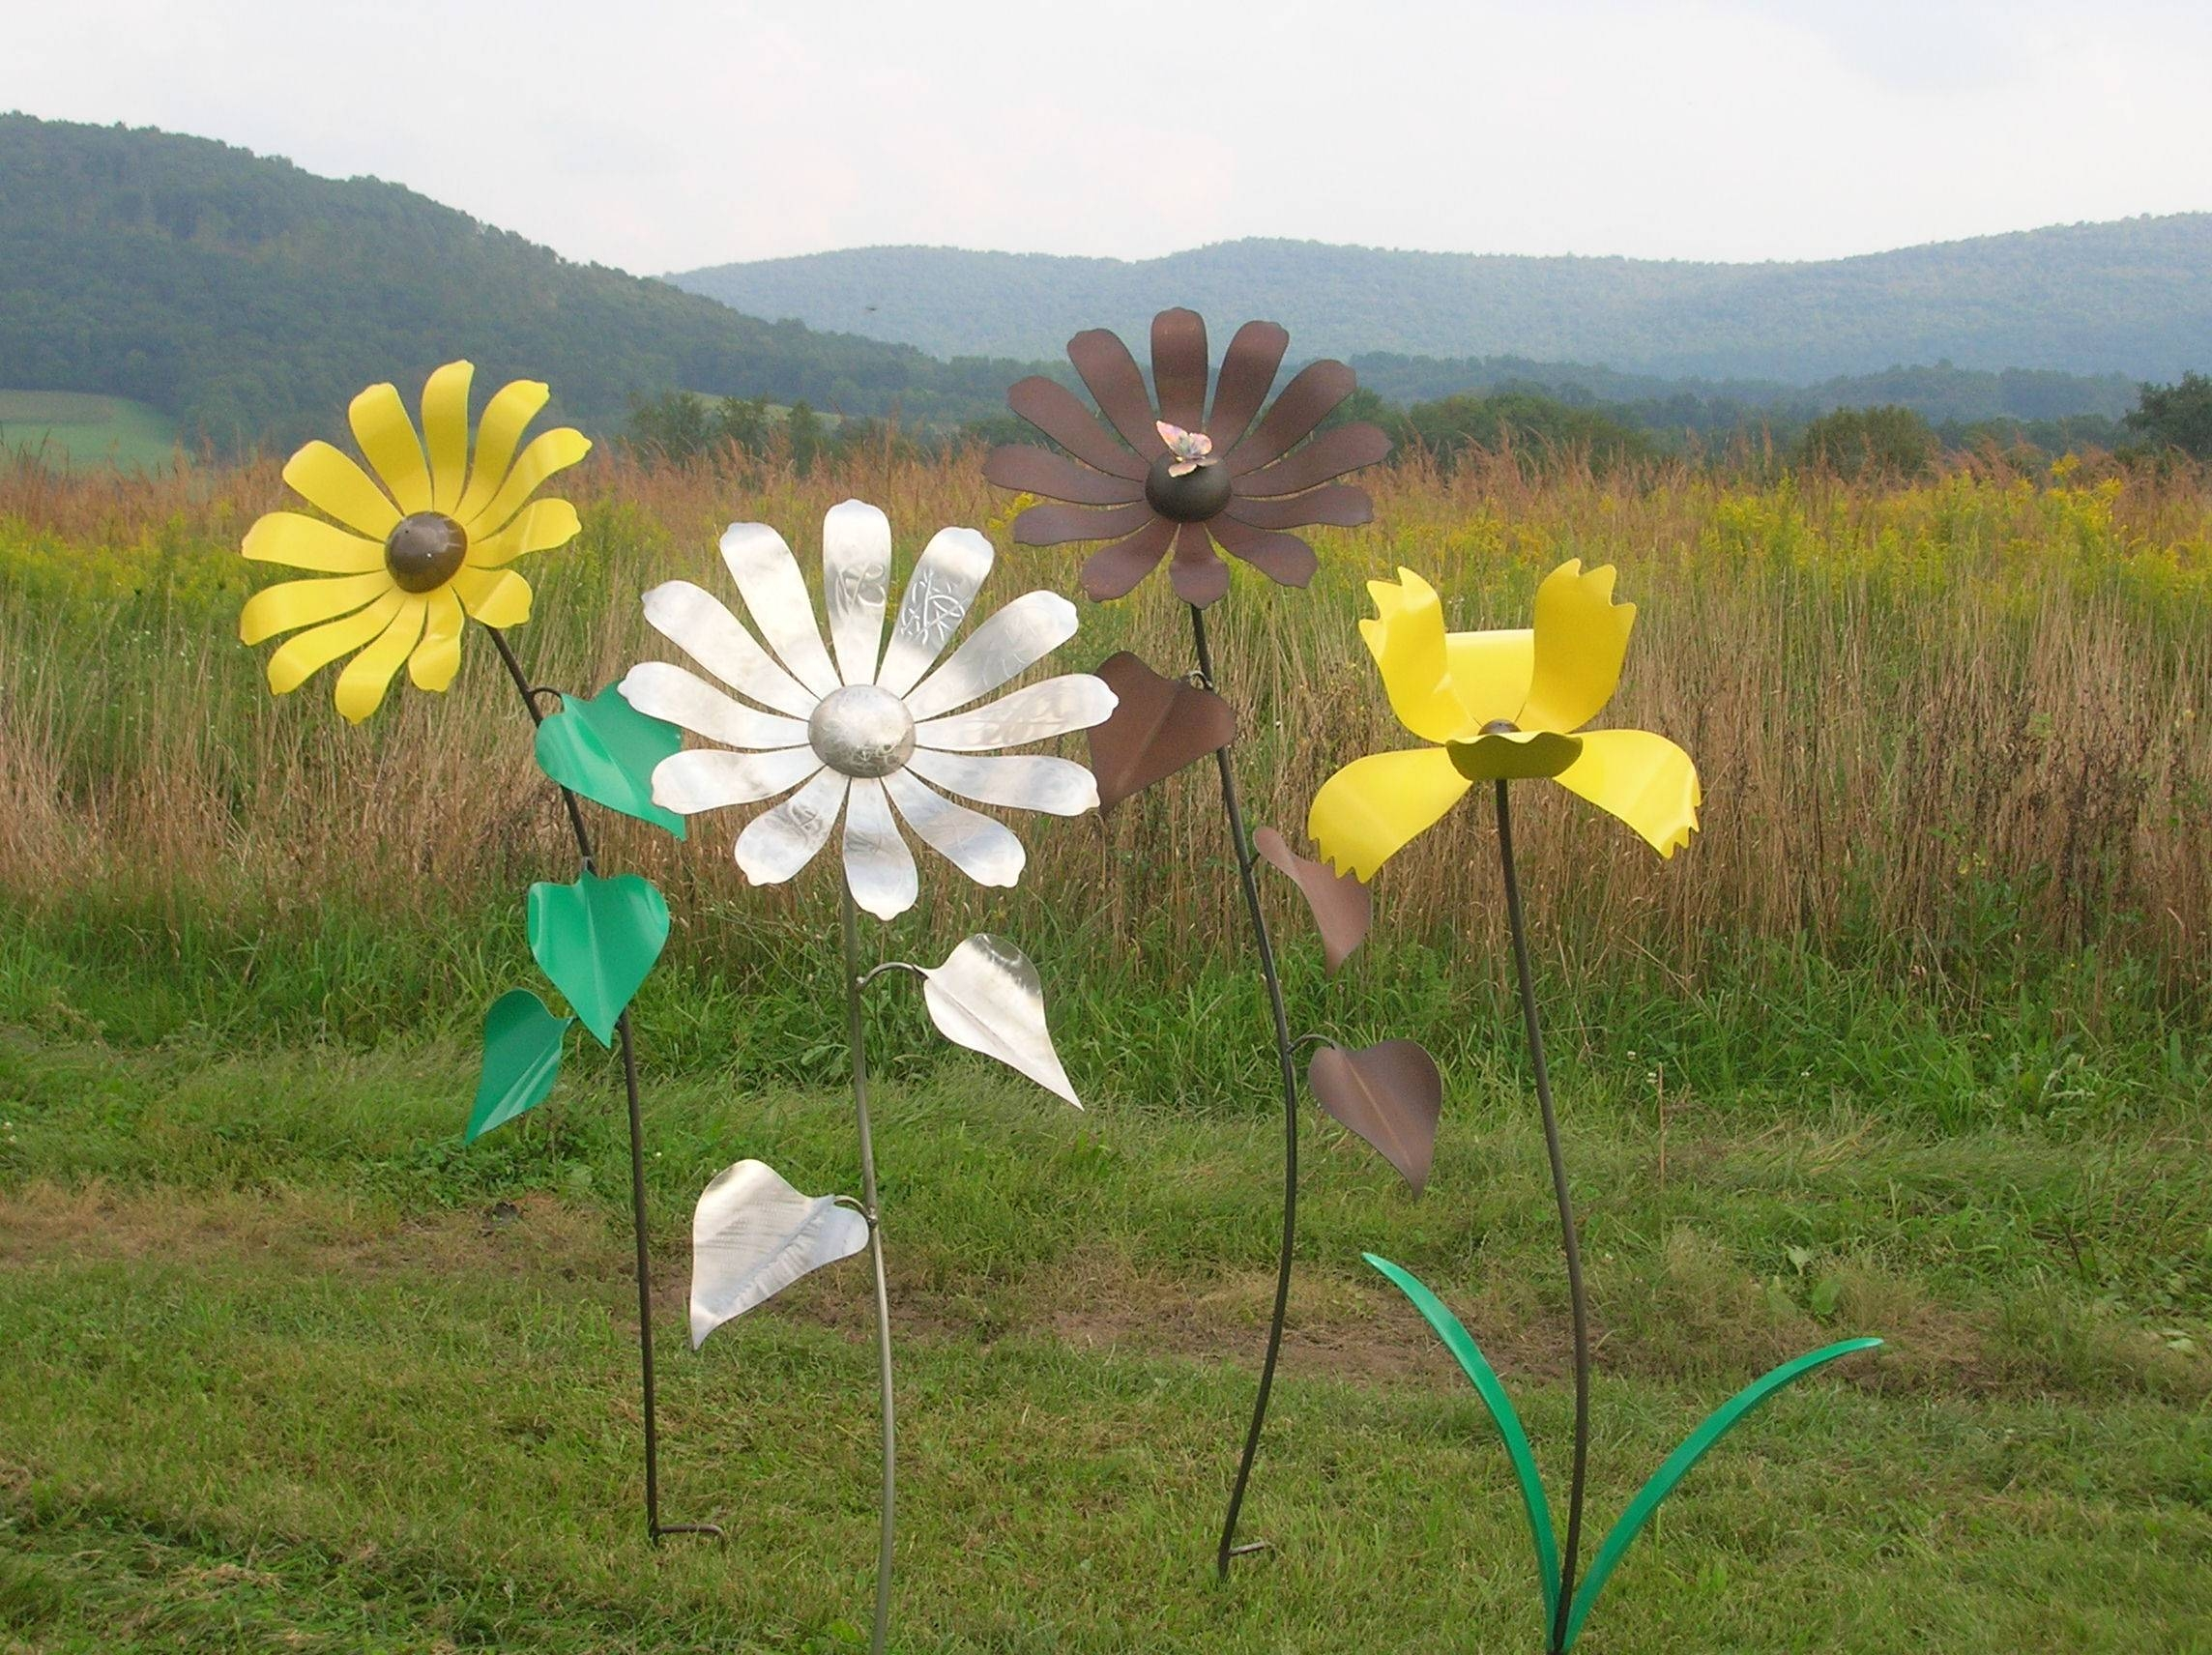 Giant Sunflowers | Shull's Metal Fab Within Recent Metal Sunflower Yard Art (View 3 of 26)